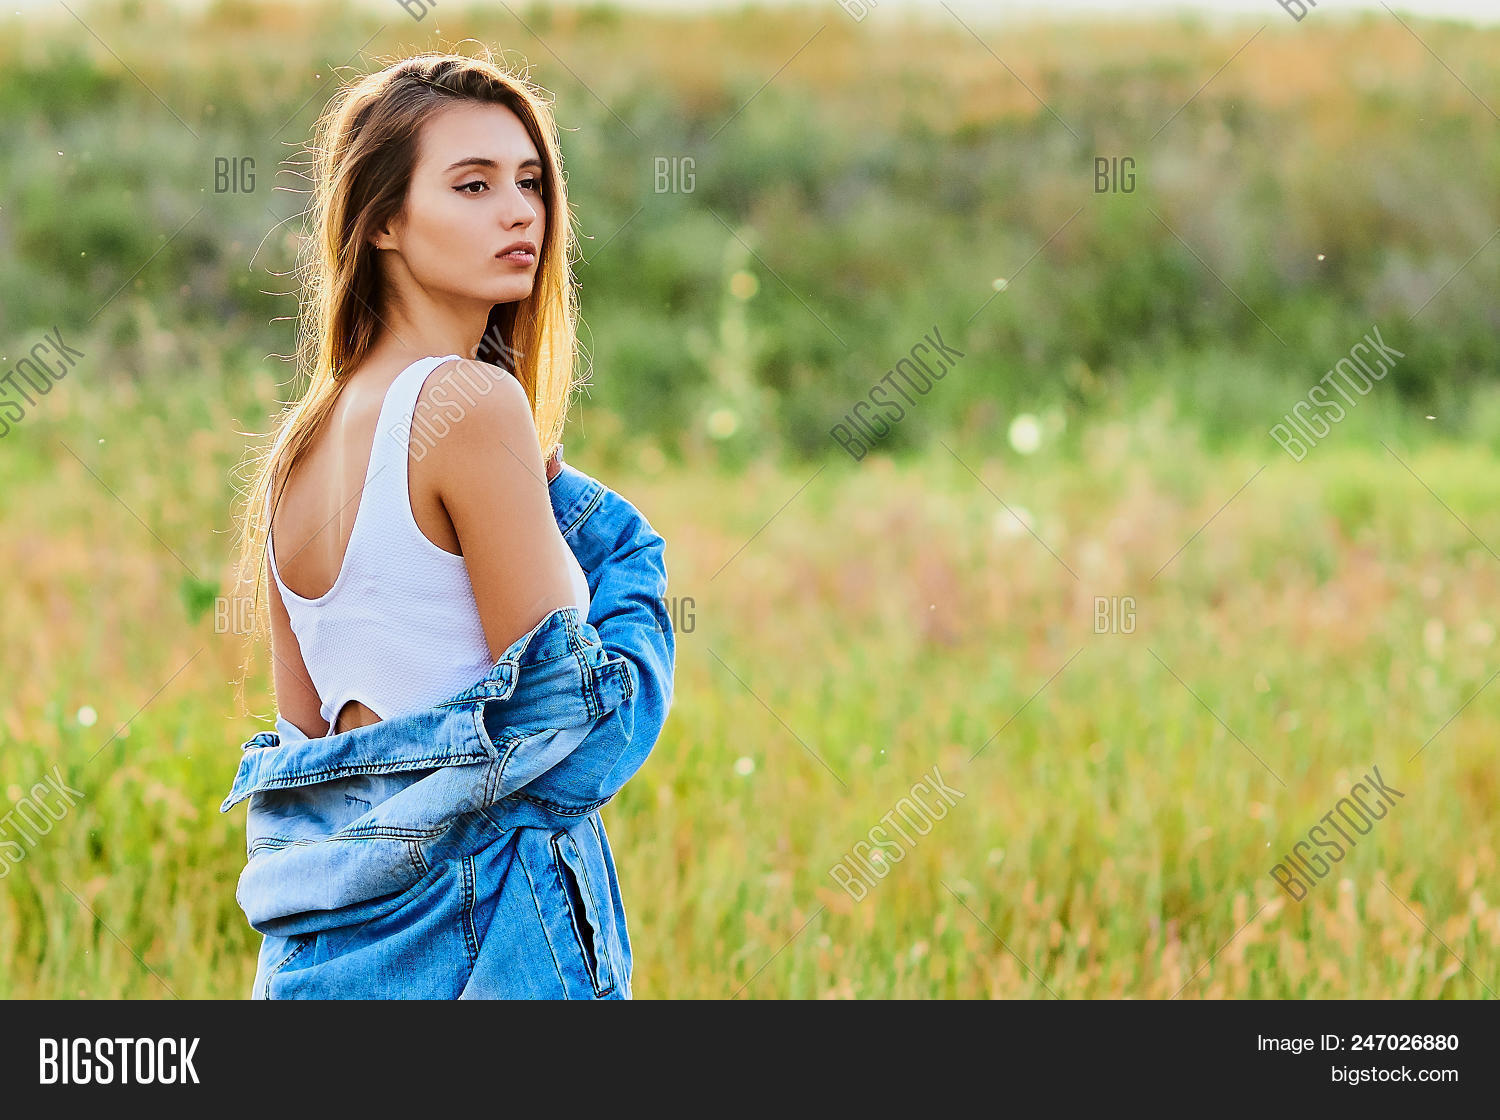 5a5c8e7e52 Happy Smiling Young Girl Wearing Blue Jeans Jacket And White Dress Is  Standing In The Field